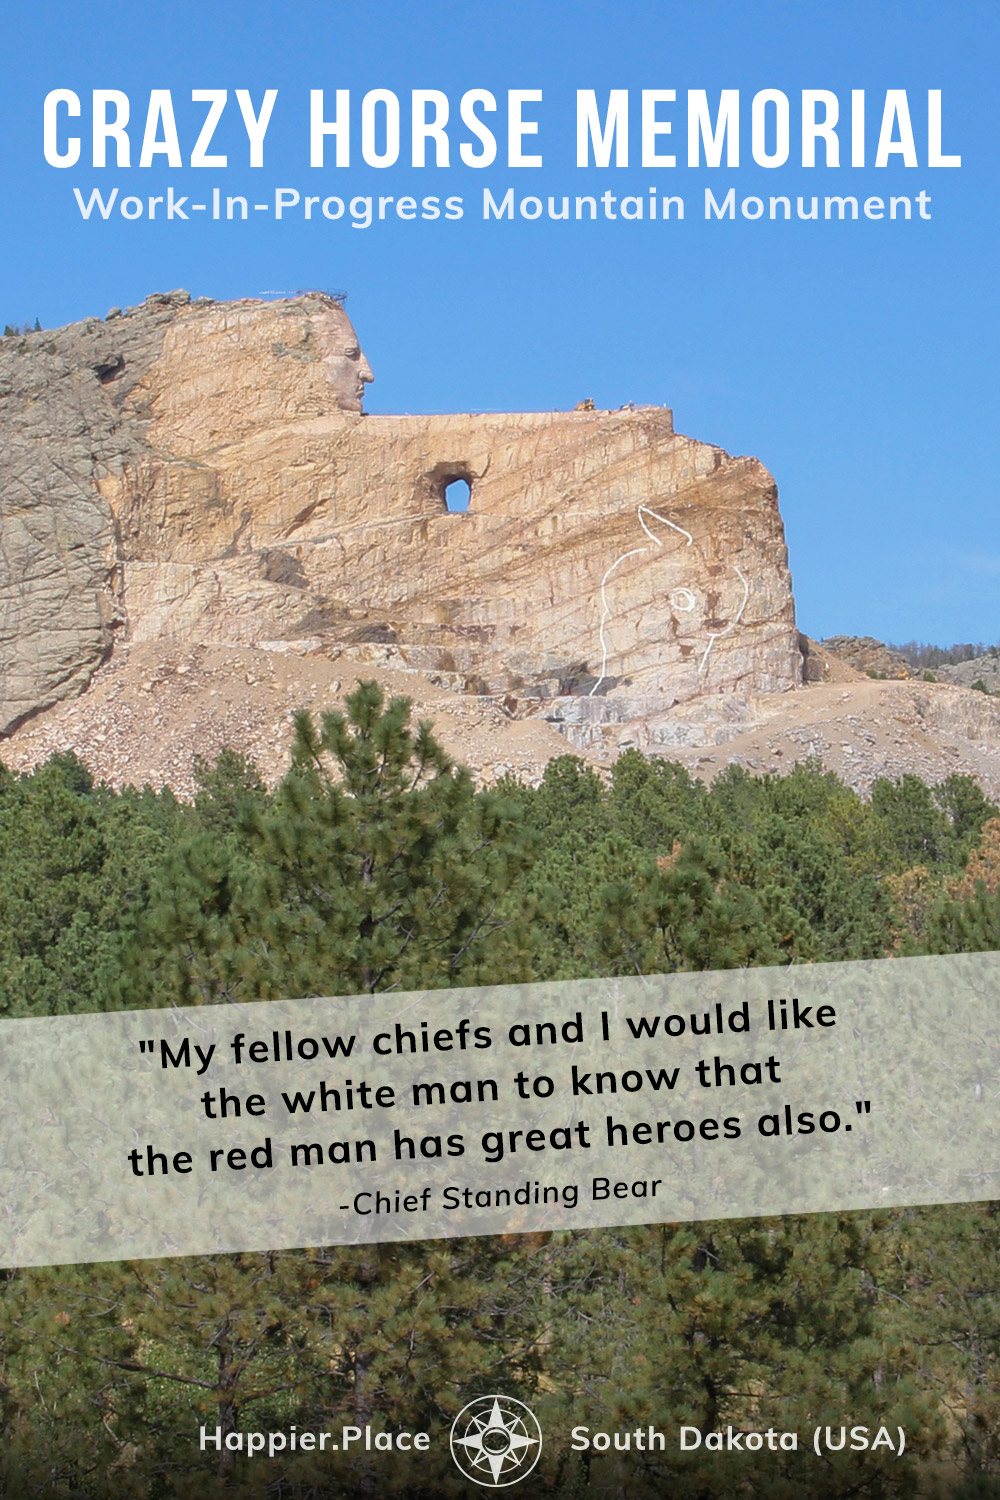 Crazy Horse Memorial: Epic Work-In-Progress Mountain Monument in South Dakota, USA. 'My fellow chiefs and I would like the white man to know that the red man has great heroes also.' - Chief Henry Standing Bear